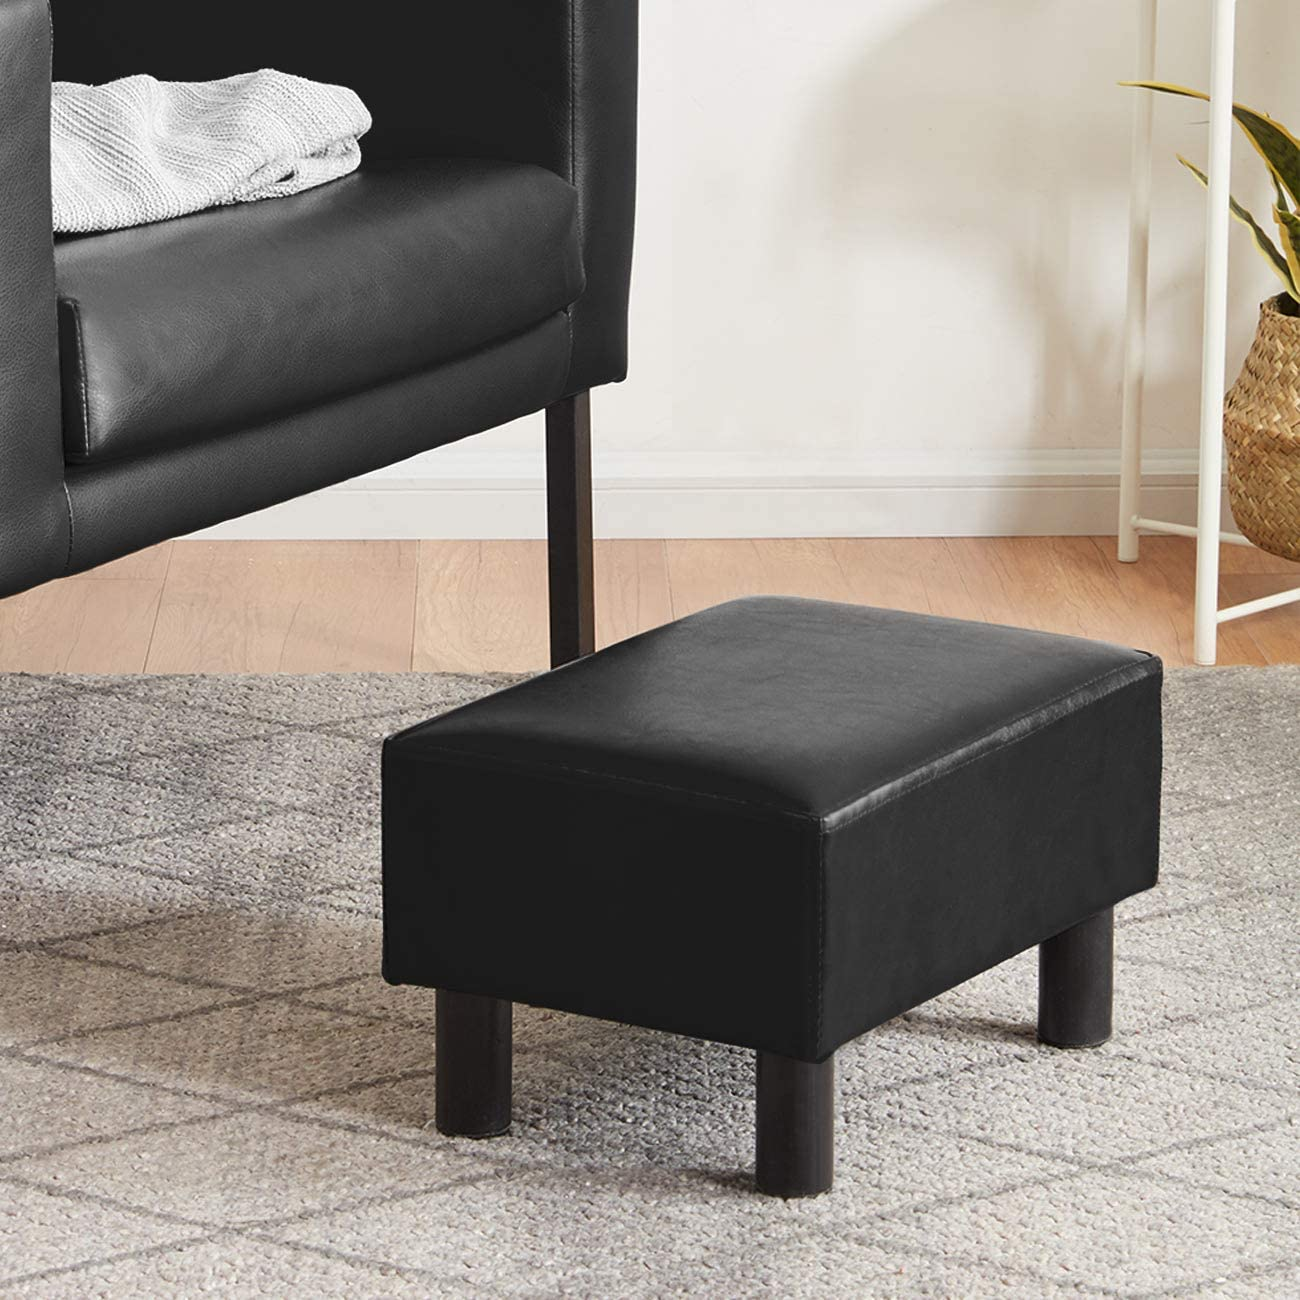 YOUDENOVA 16 inches Footstool Ottoman with Stable Wooden Legs, Small Footrest Under Desk, Faux Leather Black Step Stool Padded Seat, Support 350lbs